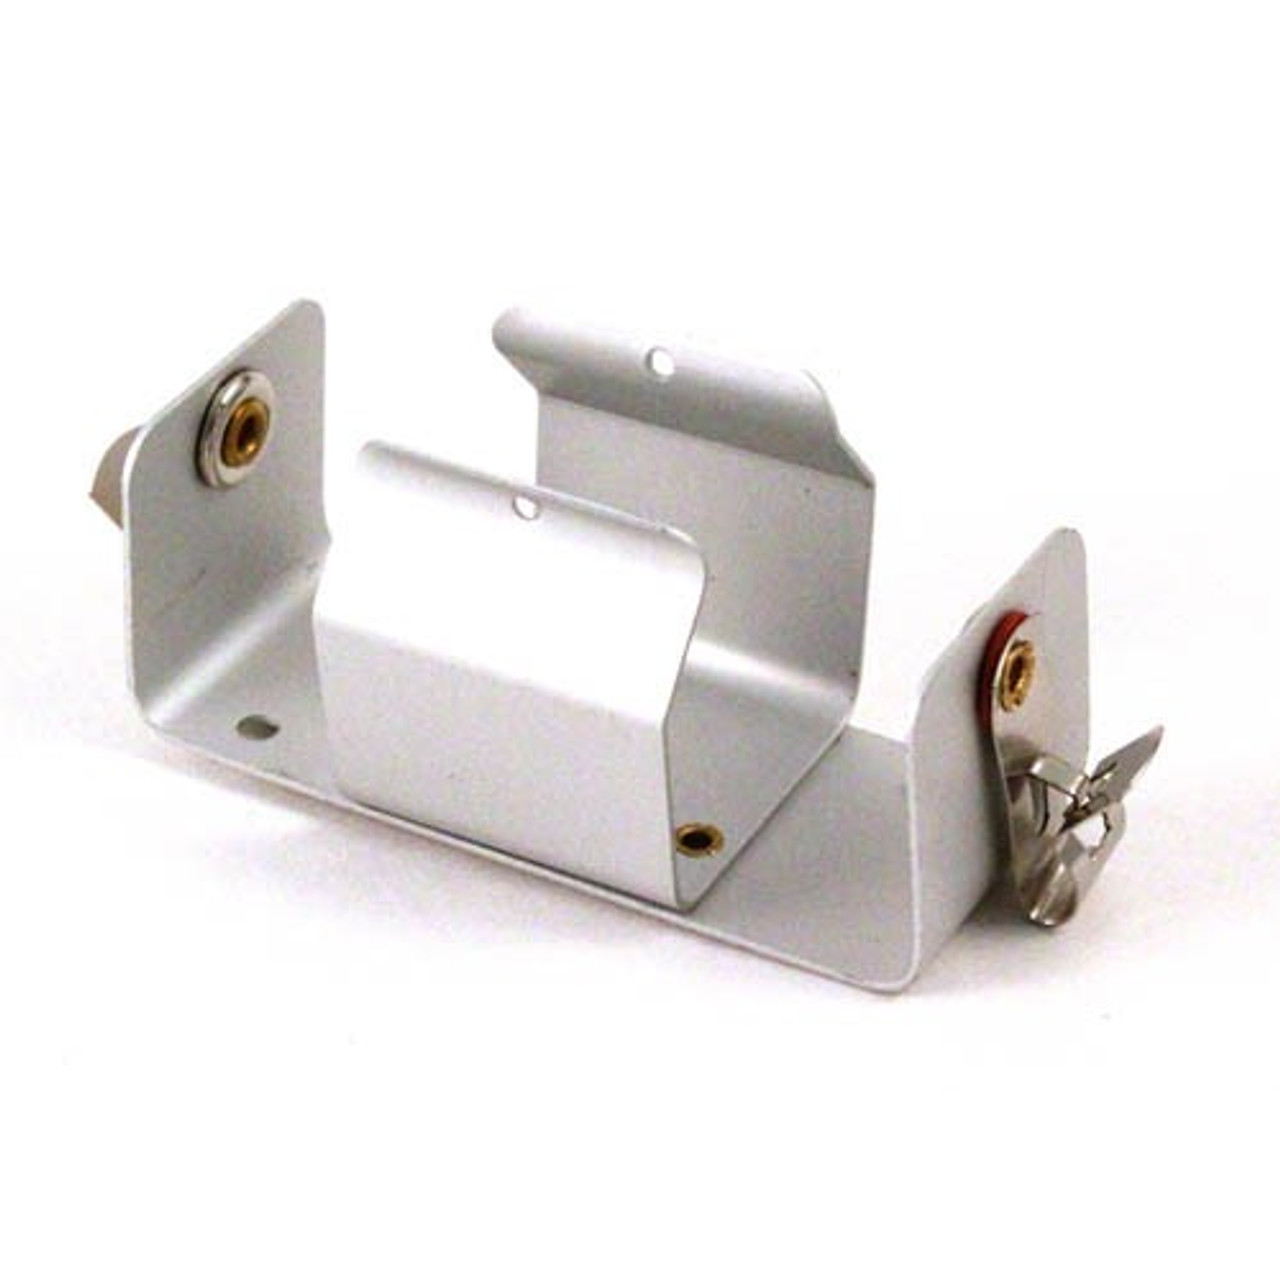 1 D cell metal battery holder with Fahnstock clips